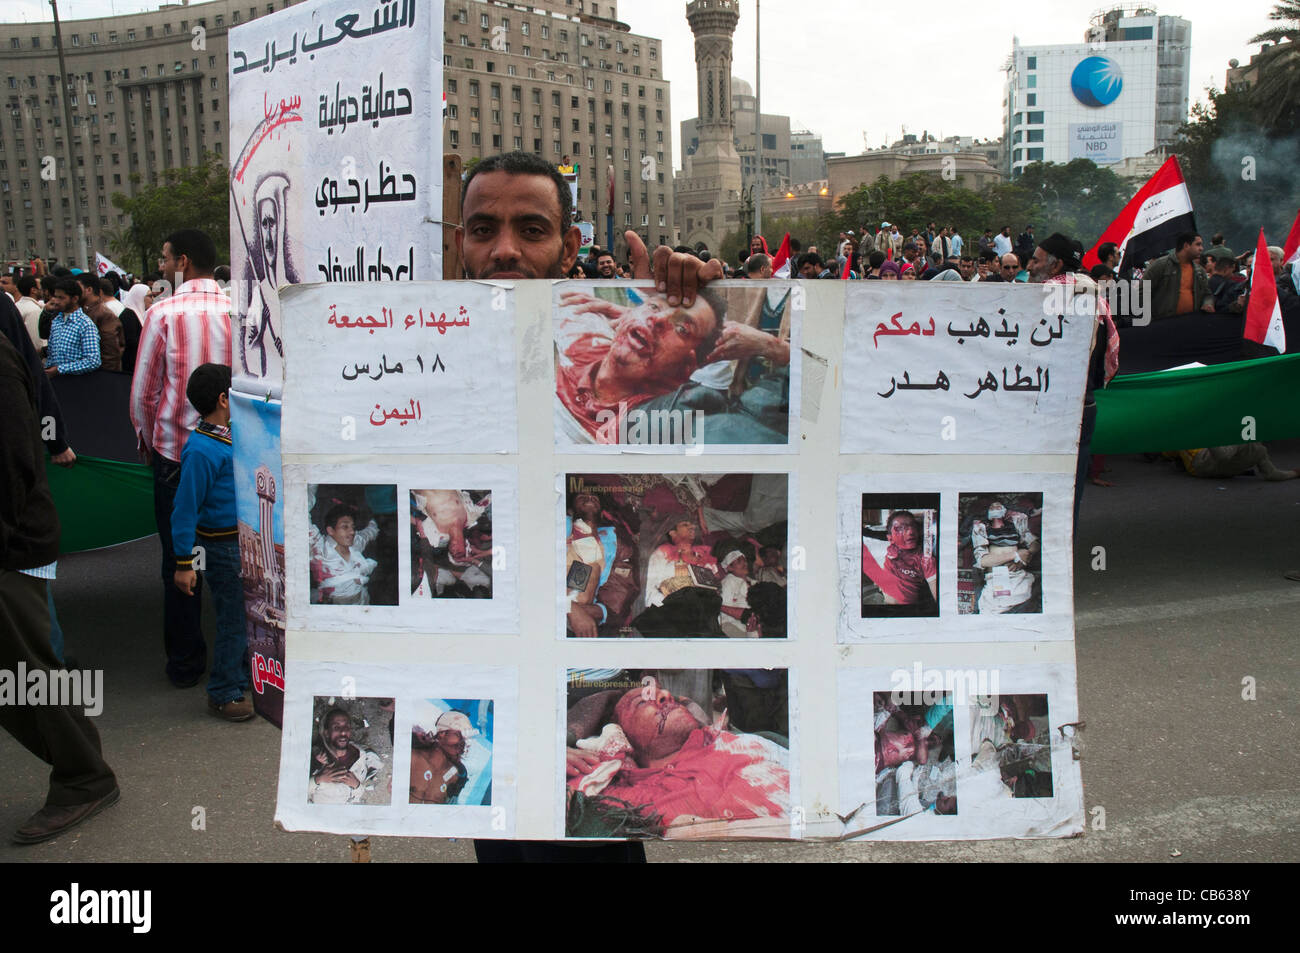 Protestor holds placard alleging brutality by security forces at demonstrations in Tahrir Square, Cairo, November - Stock Image